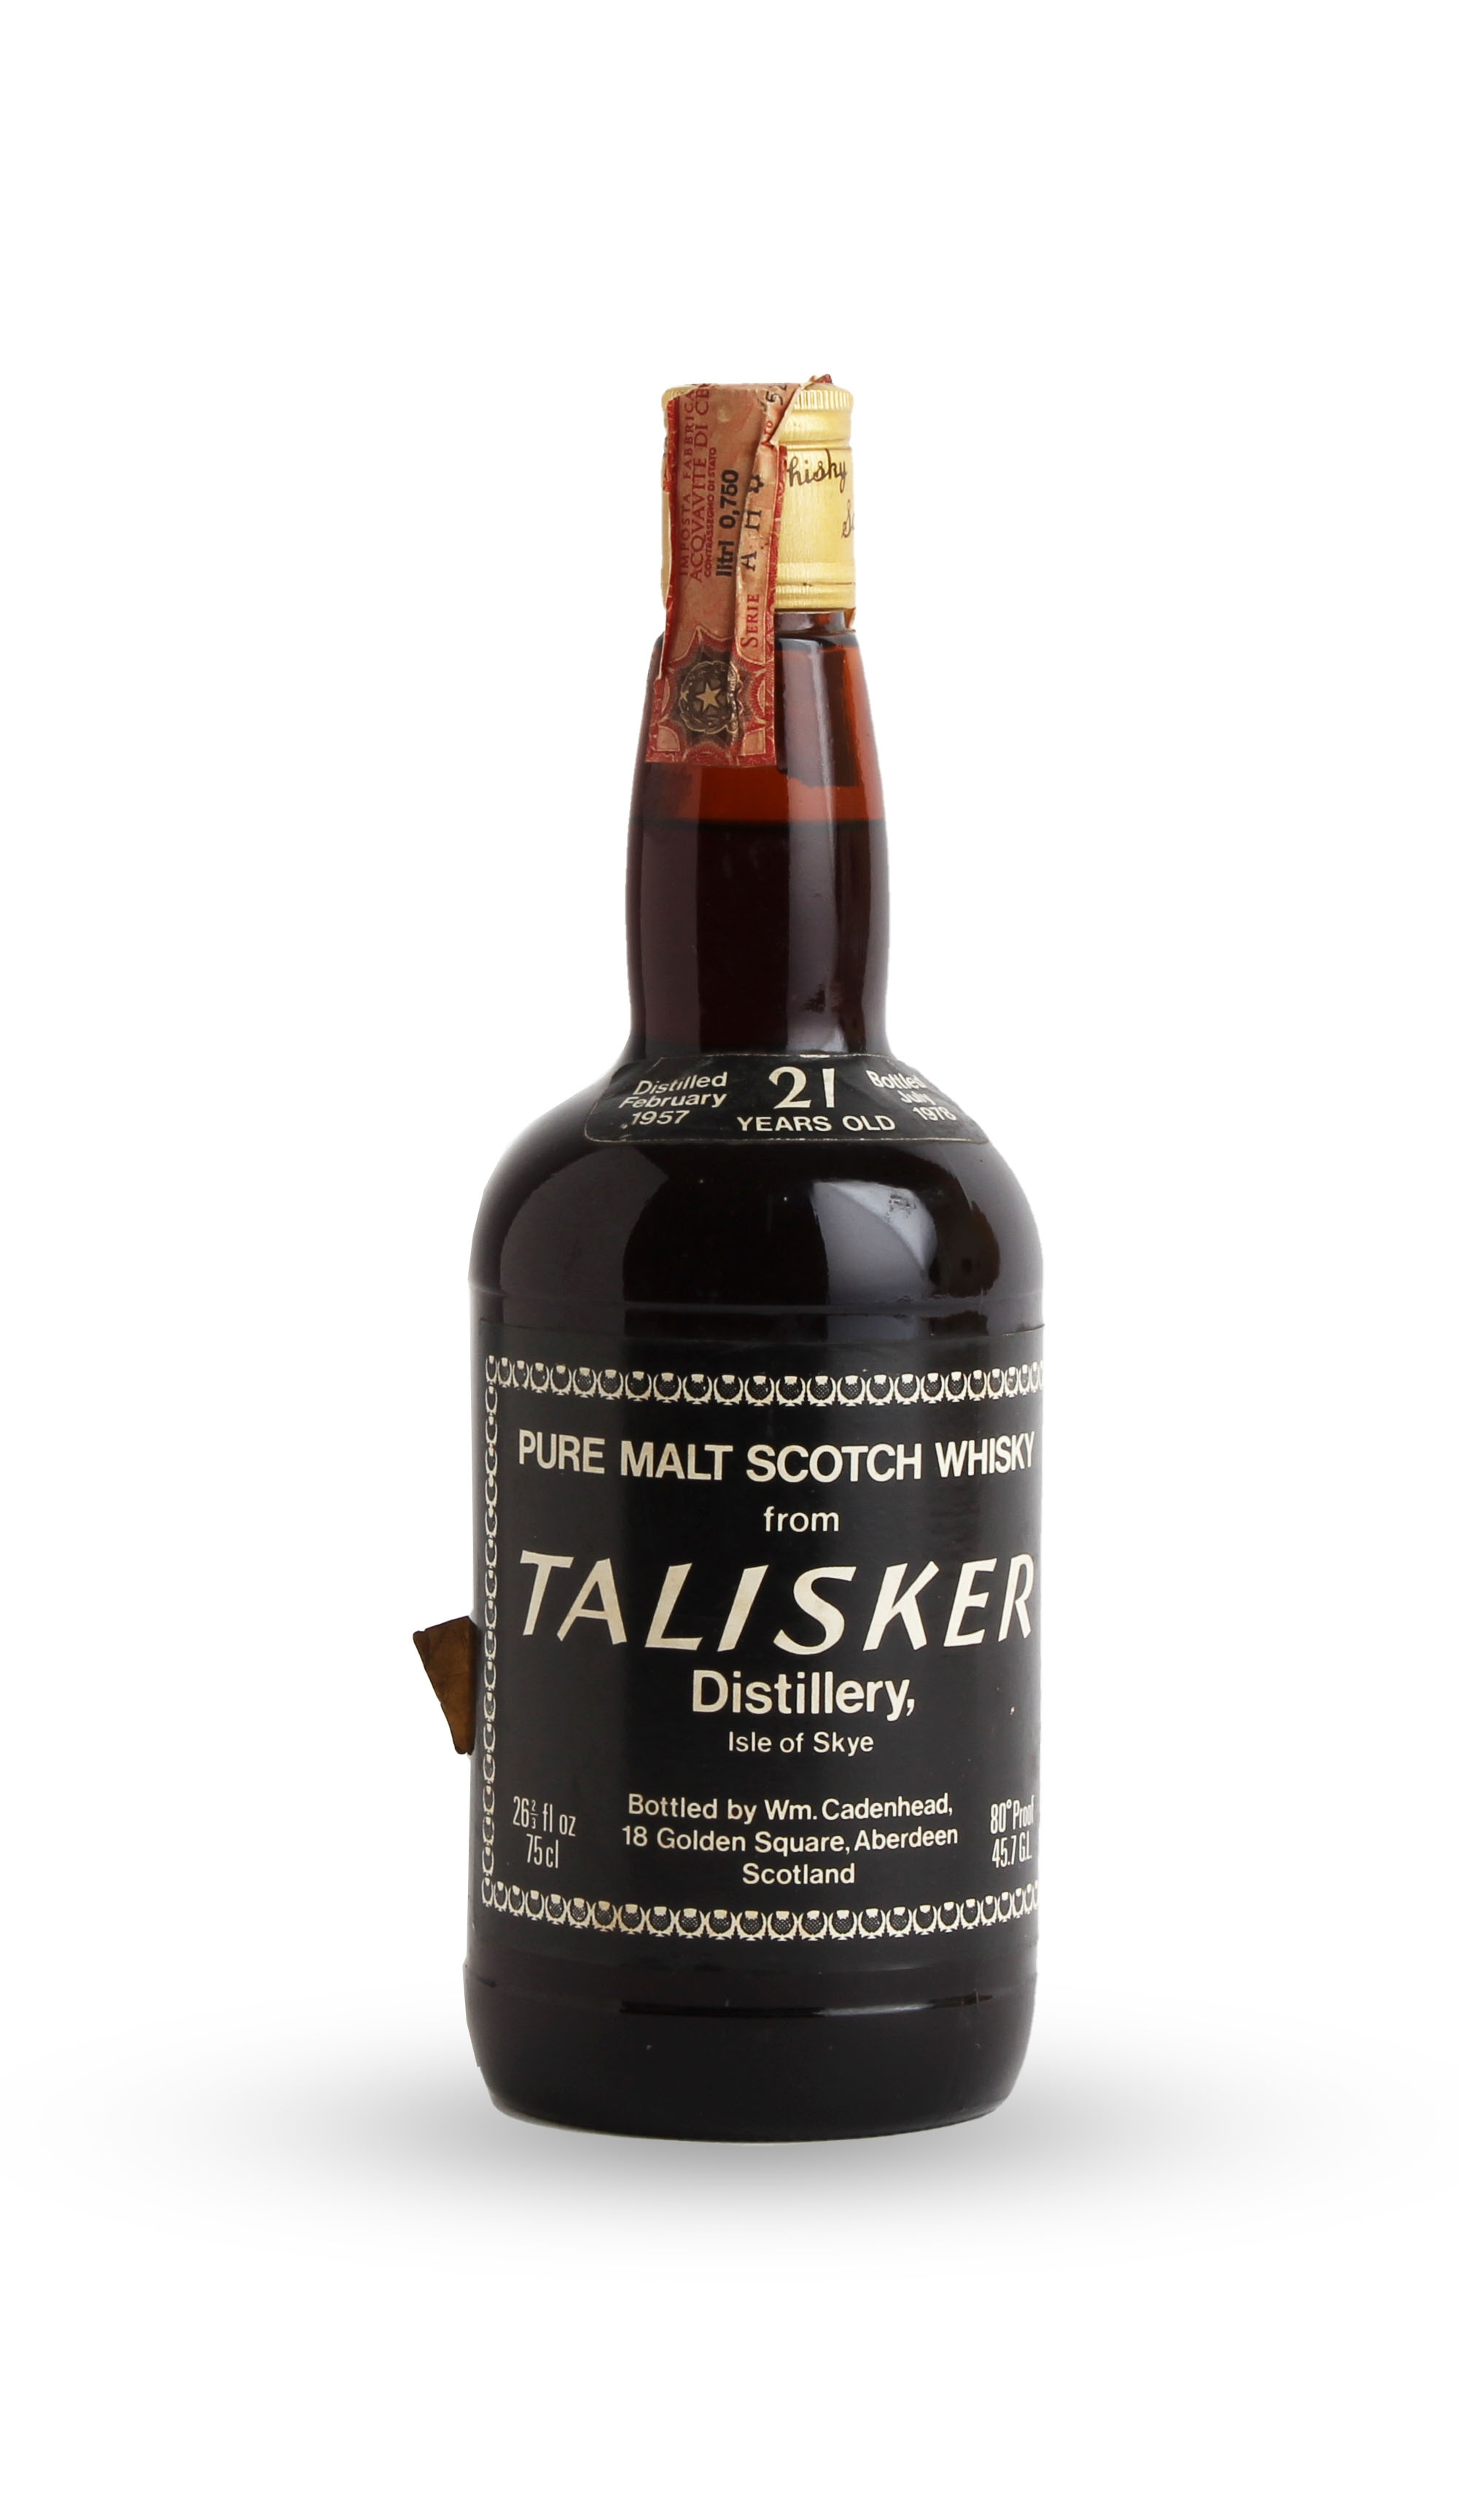 Talisker-21 year old-1957